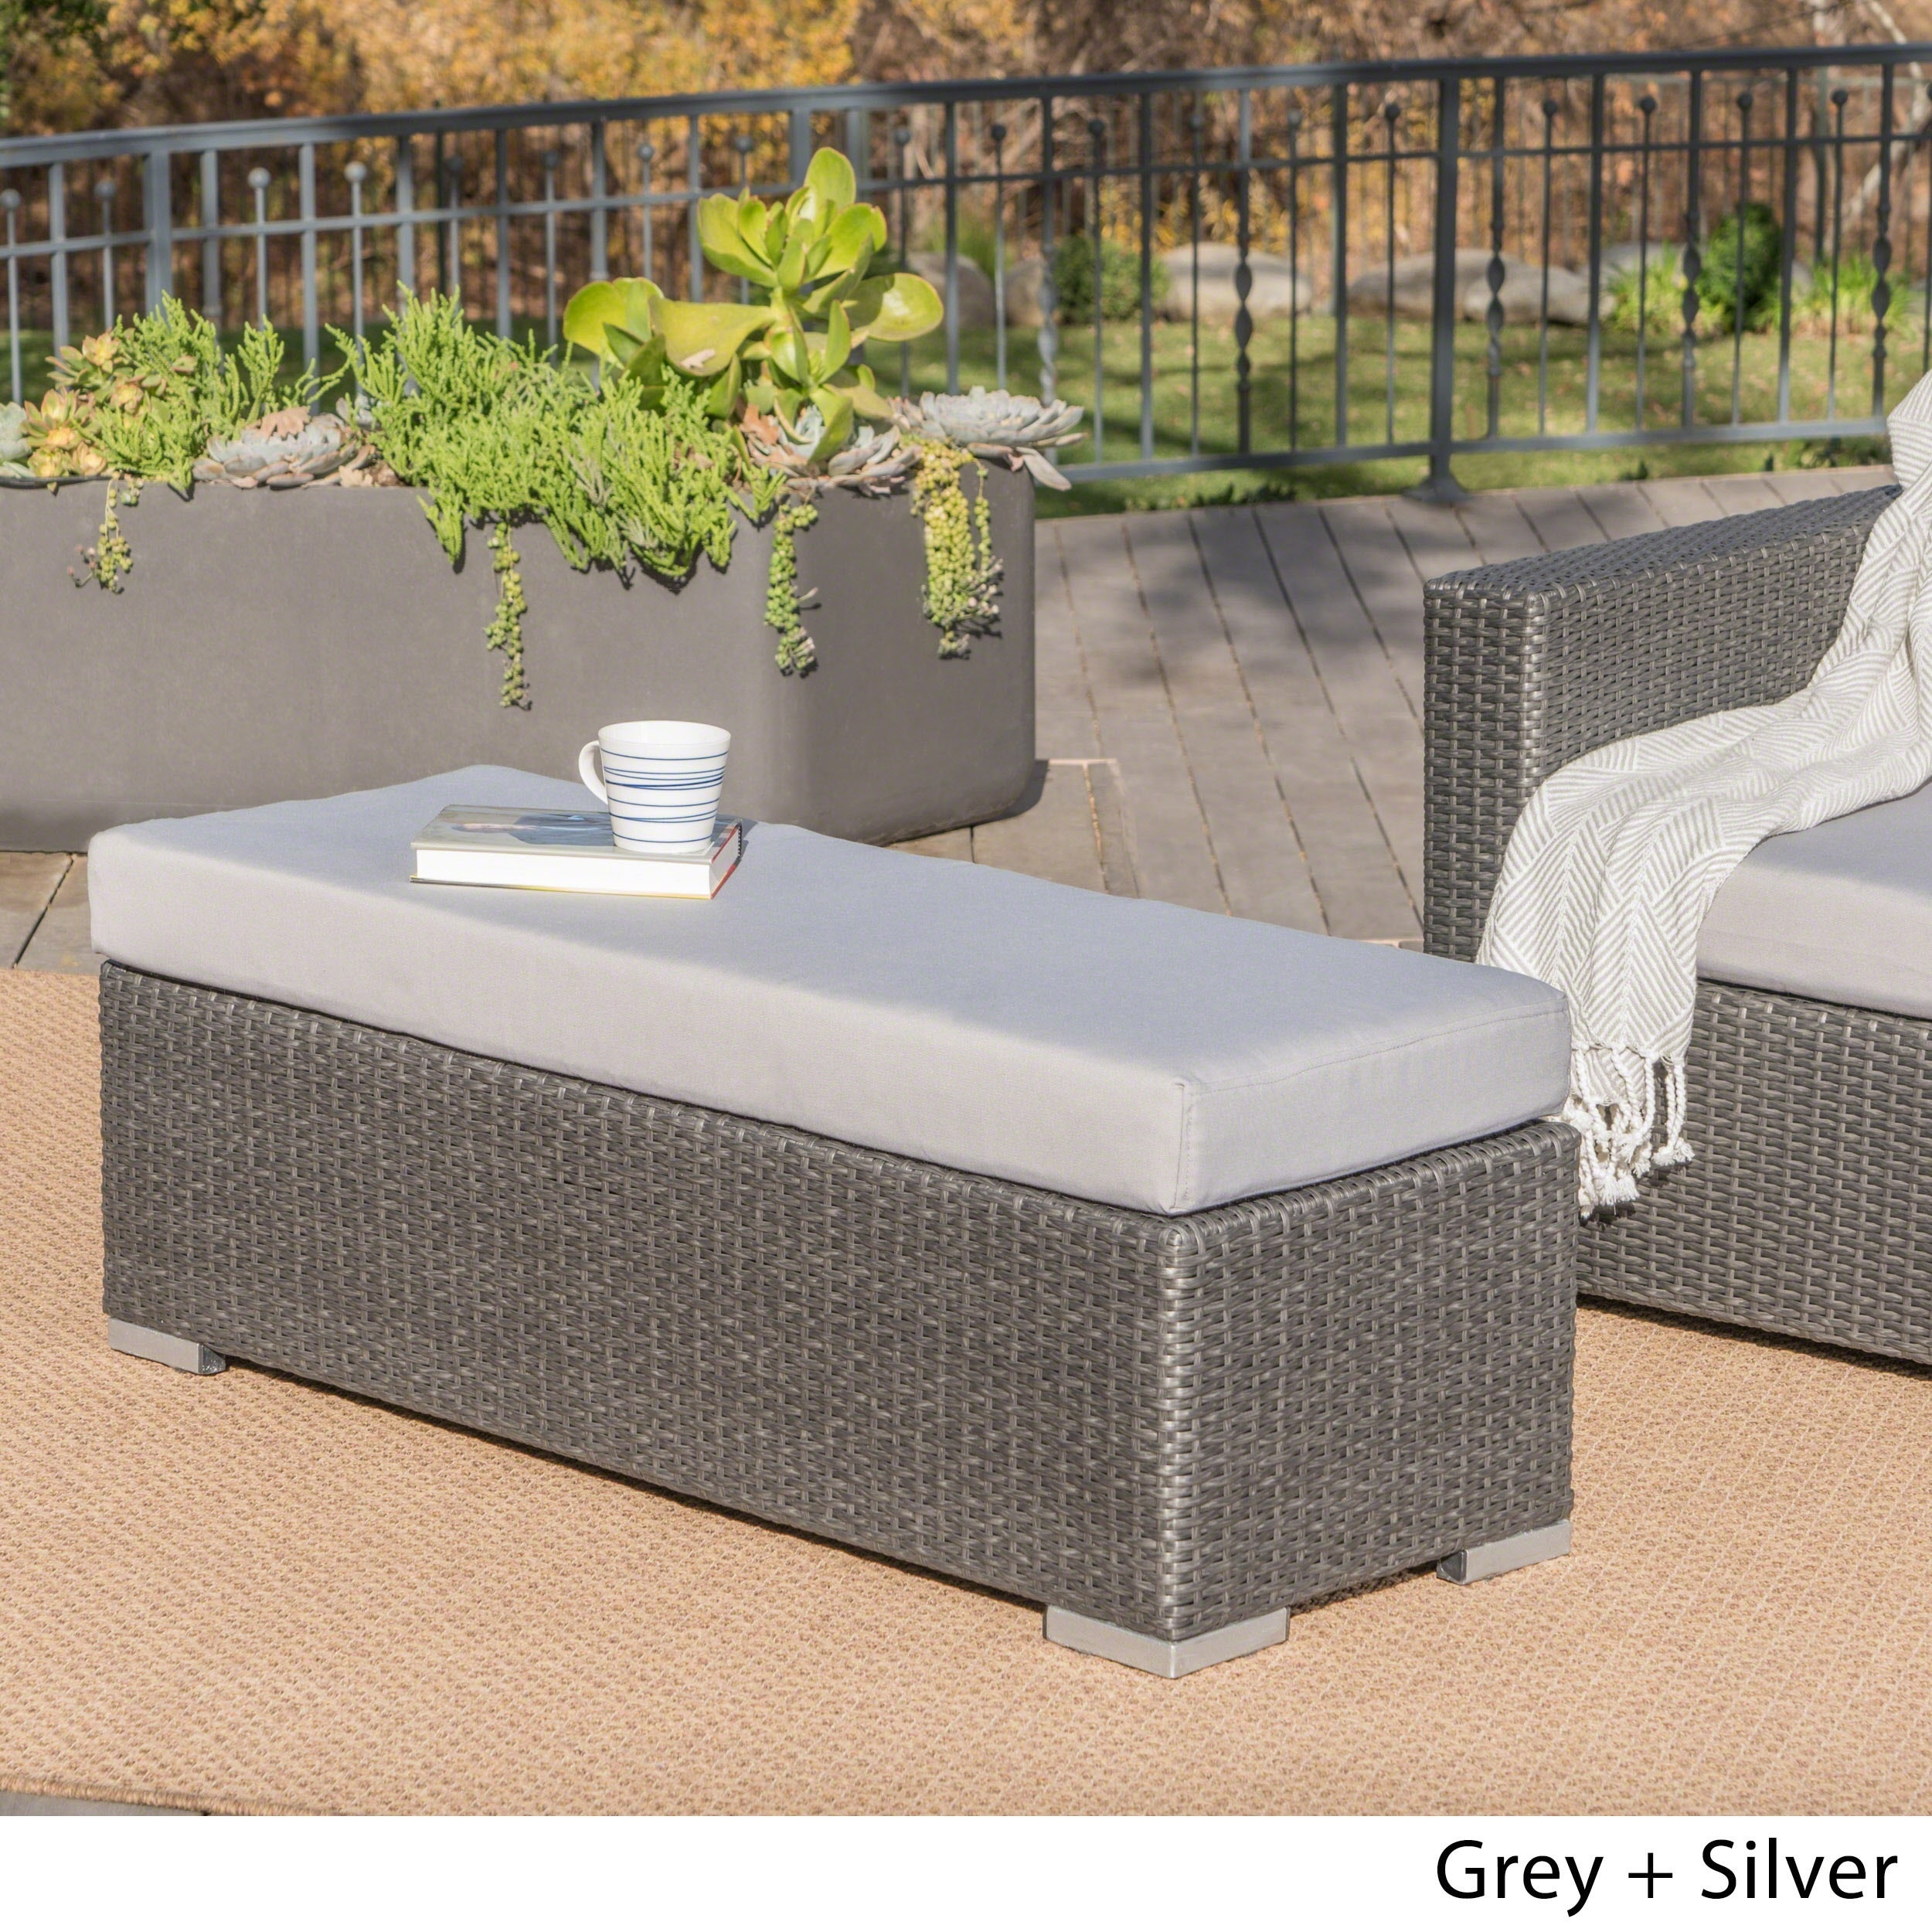 437acda28aa Shop Santa Rosa Outdoor Wicker Bench with Cushion by Christopher Knight  Home - Free Shipping Today - Overstock - 19500157